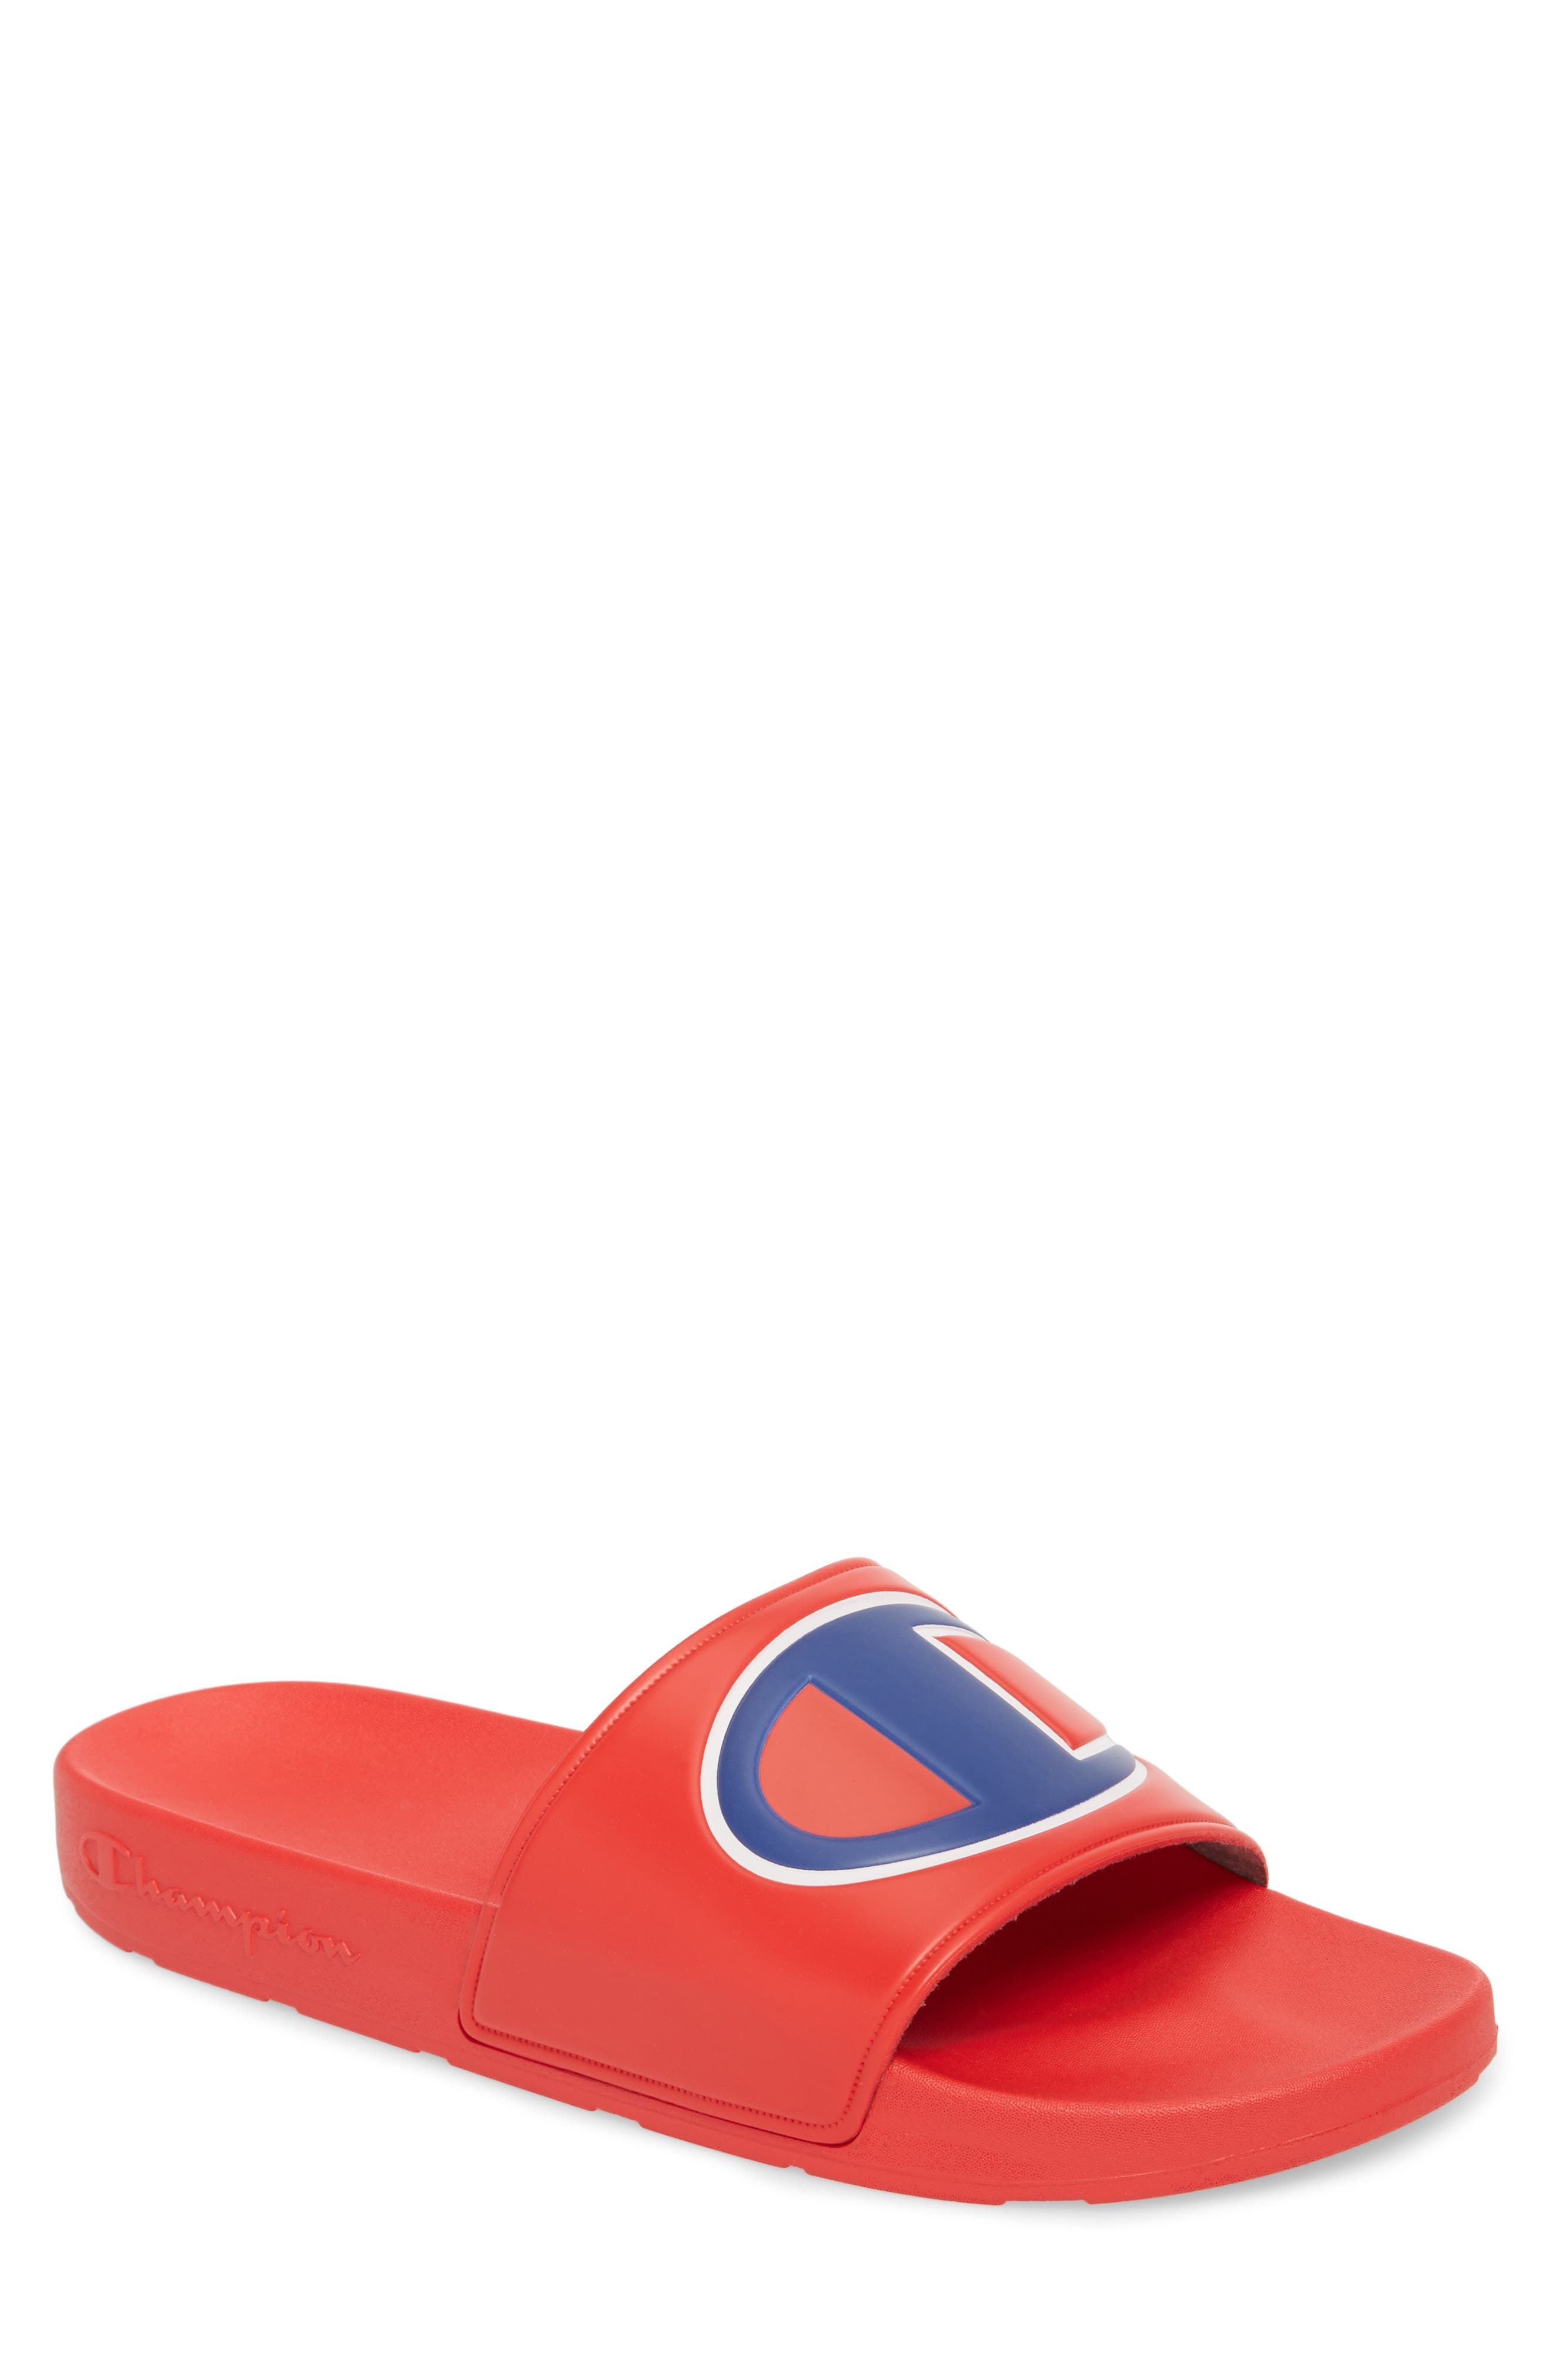 IPO Sports Slide,                             Main thumbnail 1, color,                             RED